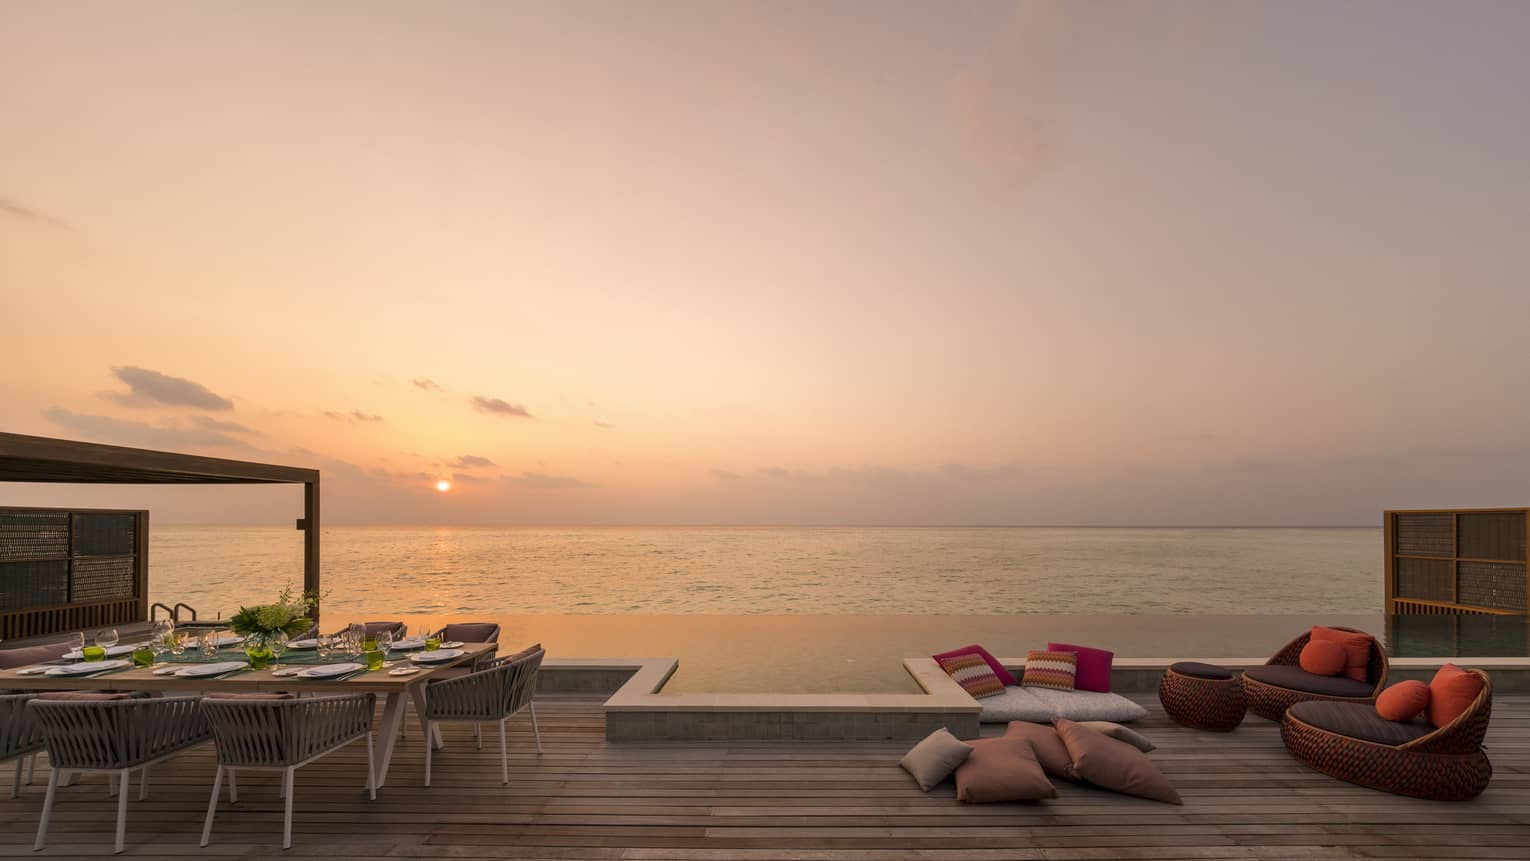 Large wooden deck with dining table and lounge chairs, overlooking an ocean sunset